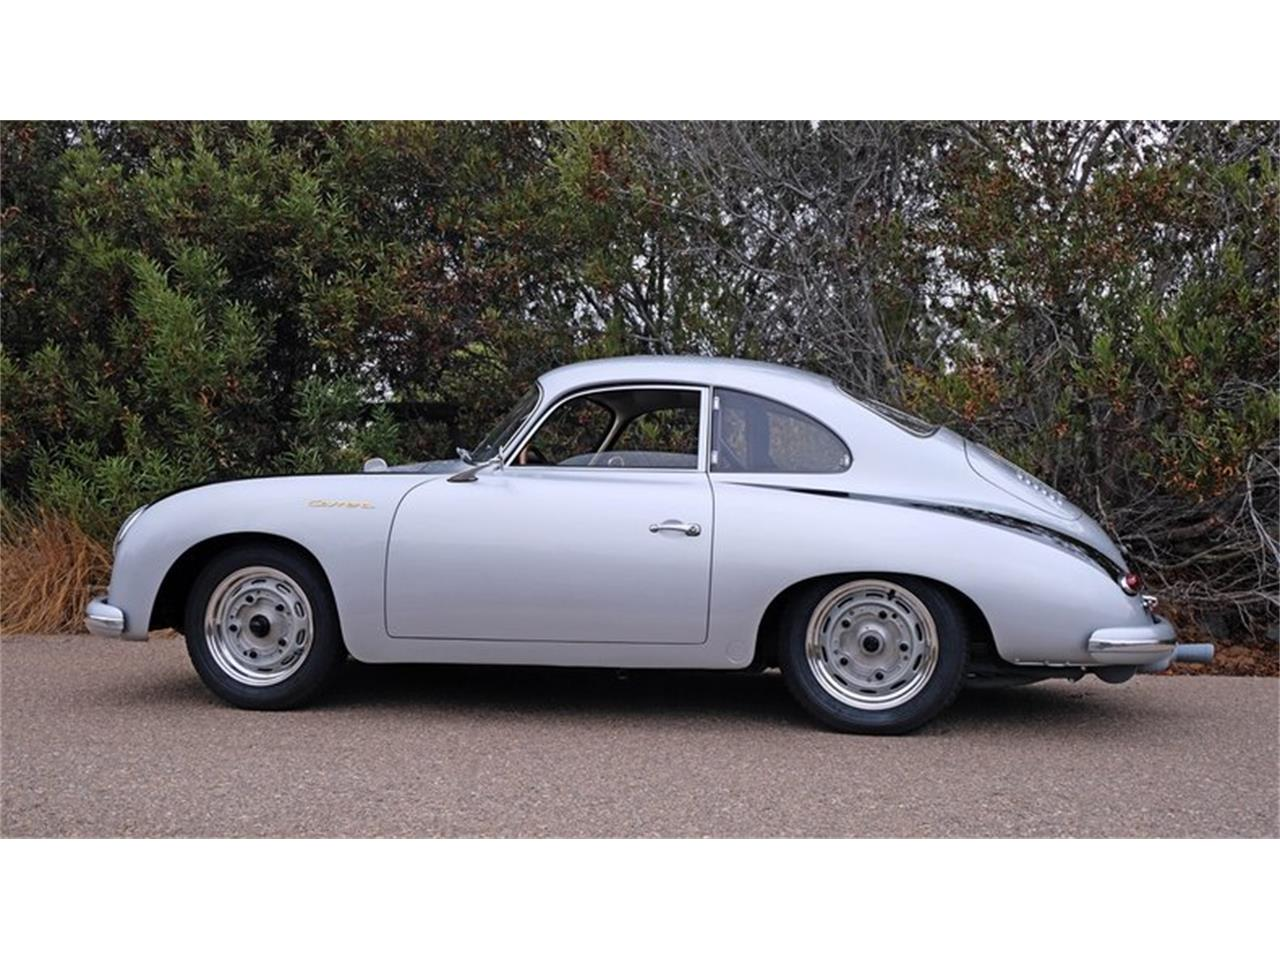 Large Picture of 1957 Porsche 356 located in San Diego California Auction Vehicle - Q2HJ